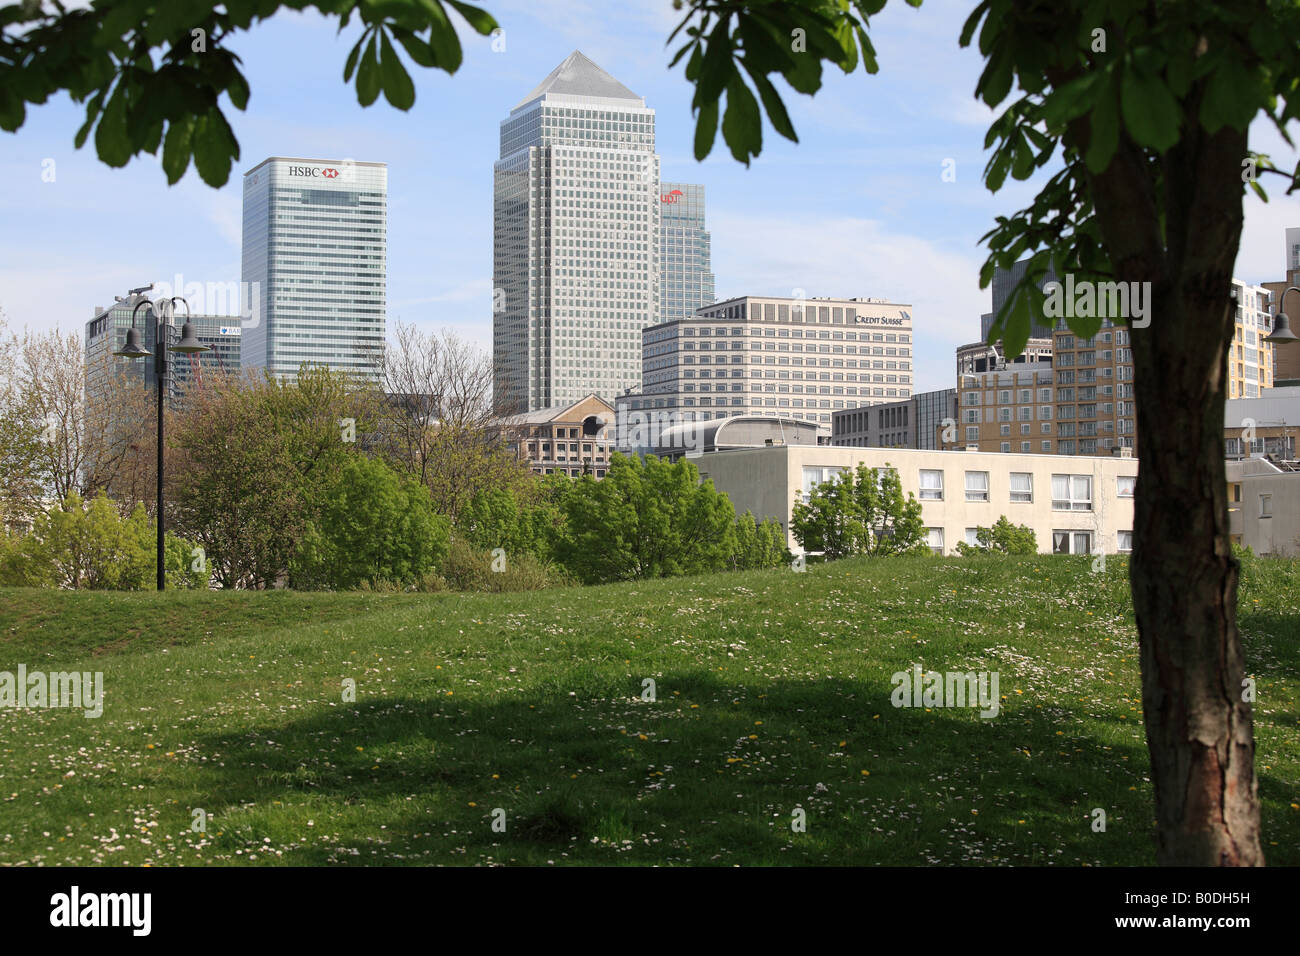 Canary Wharf viewed across park at Limehouse. - Stock Image